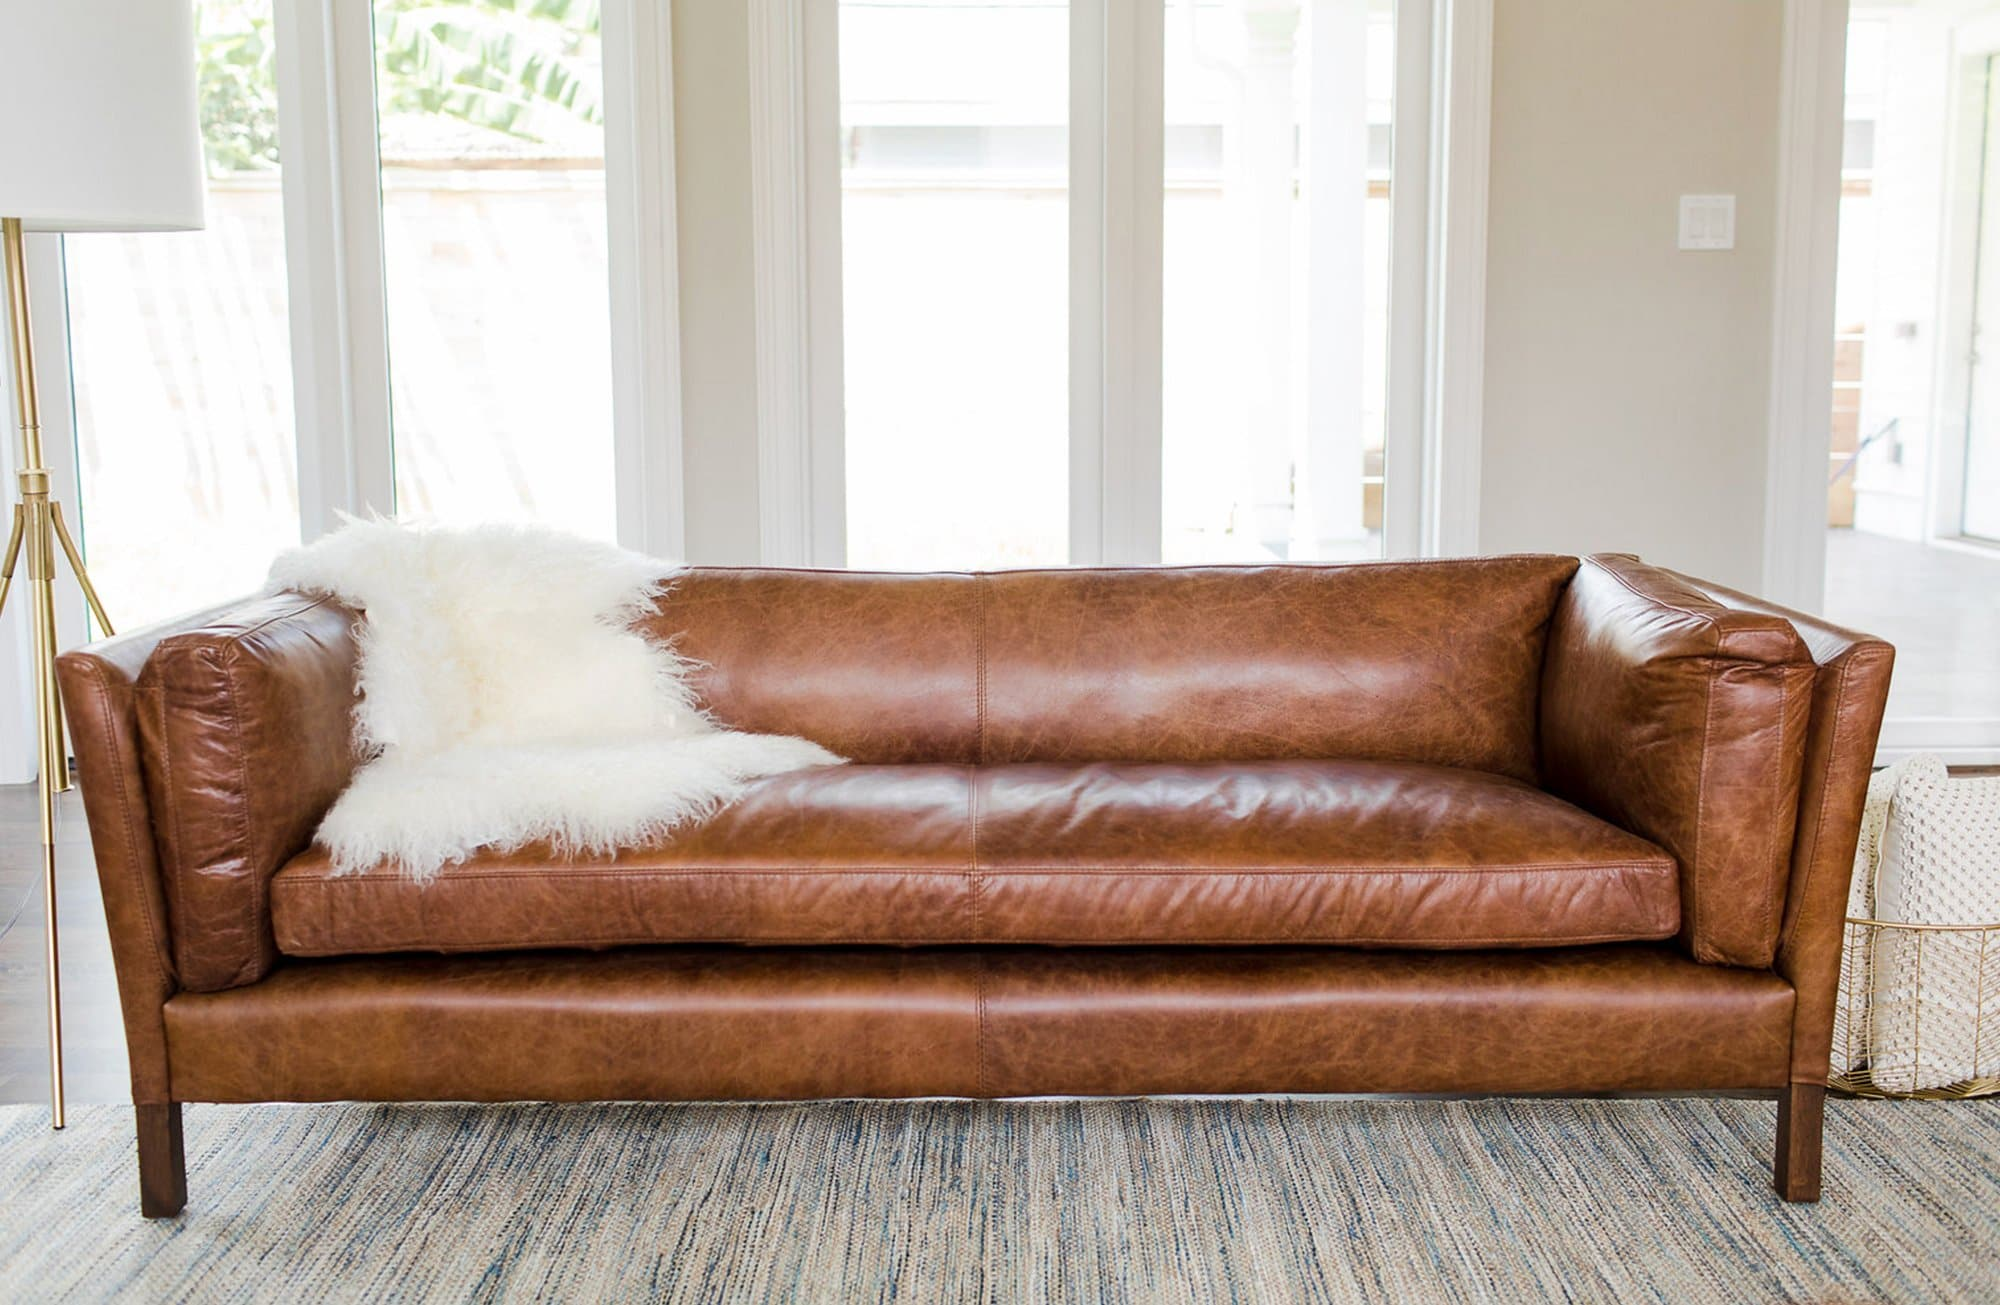 Picture of: Finley Mid Century Modern Leather Sofa Midcentury Leather Couch Edloe Finch Furniture Co